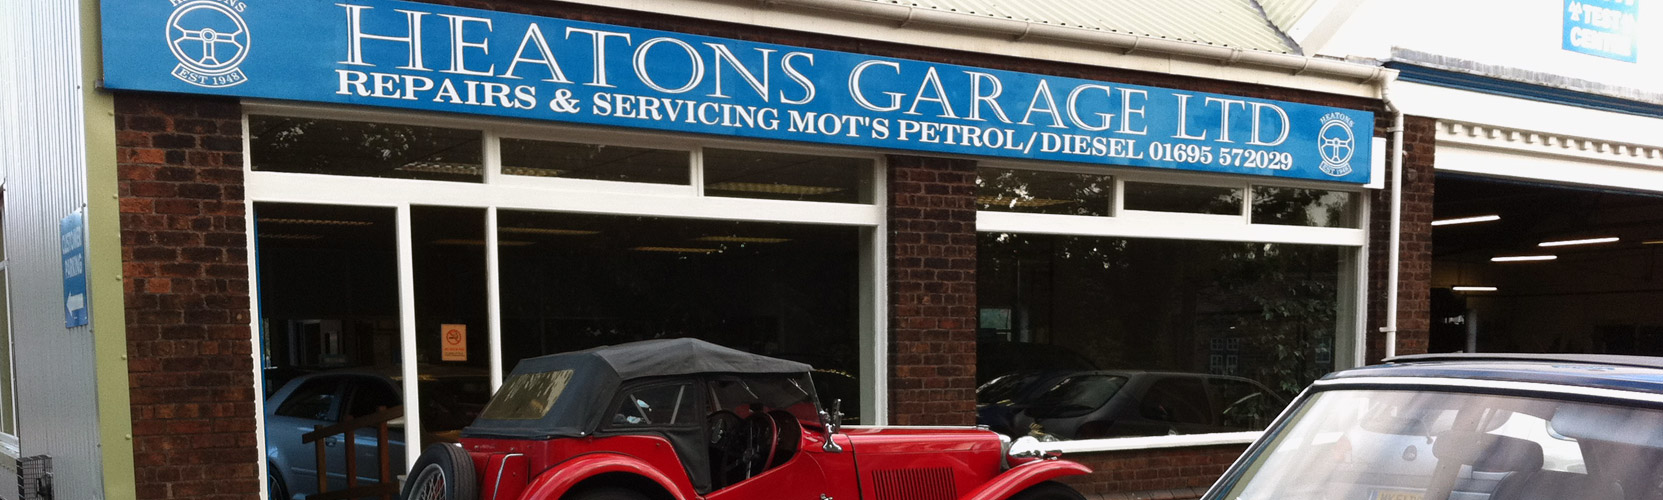 Used Cars Ormskirk Cars For Sale Ormskirk Second Hand